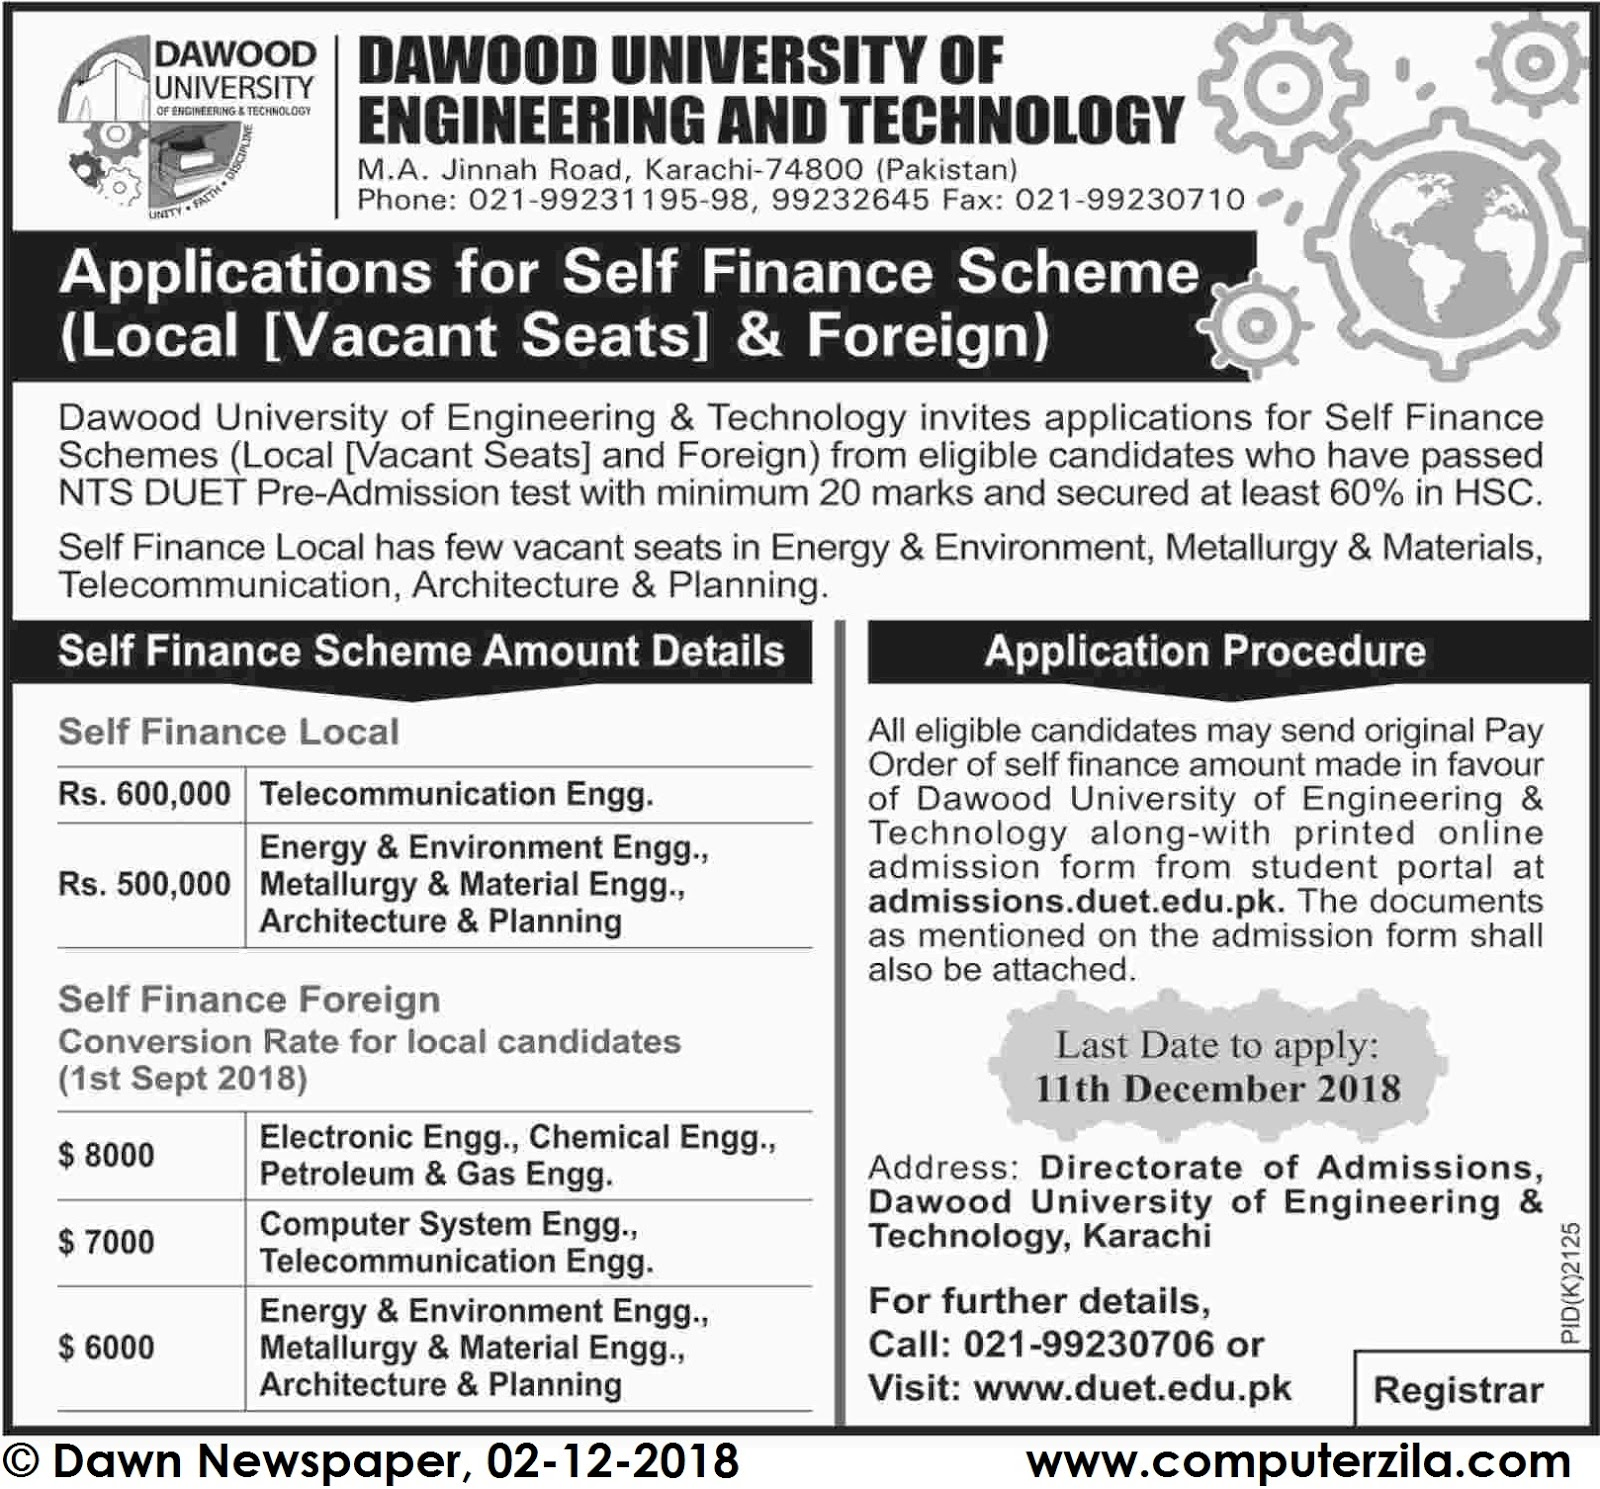 Admissions Open For Spring 2019 At DUET Karachi Campus